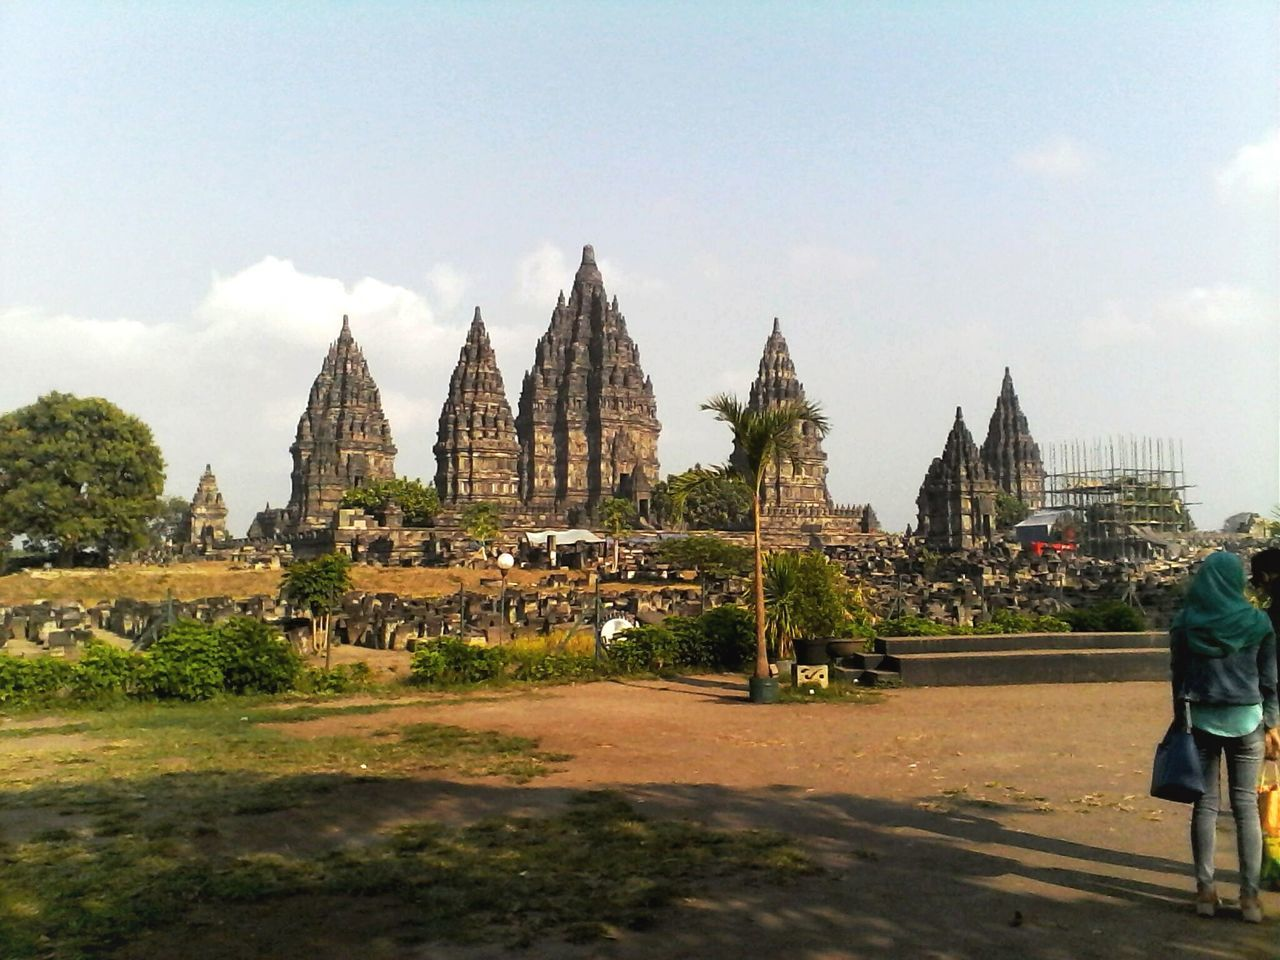 Travel Destinations Tourism Architecture Built Structure City Vacations Sky Outdoors Place Of Worship Indonesia Culture